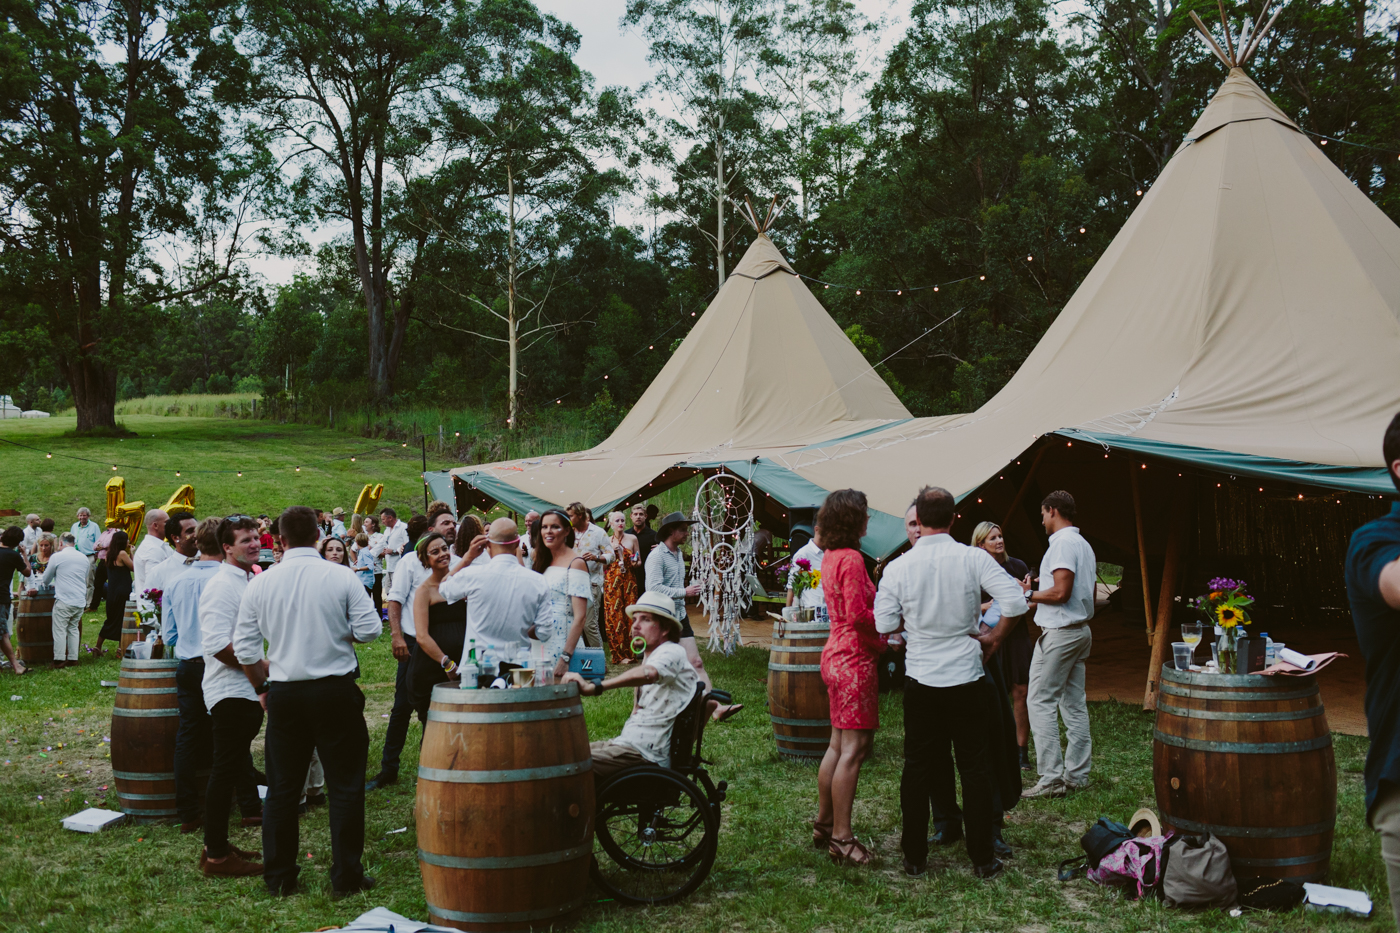 Designer Wedding Dress Gold Coast: Real Tipi Wedding: Jay And Kate's NYE Wedfest At The Farm